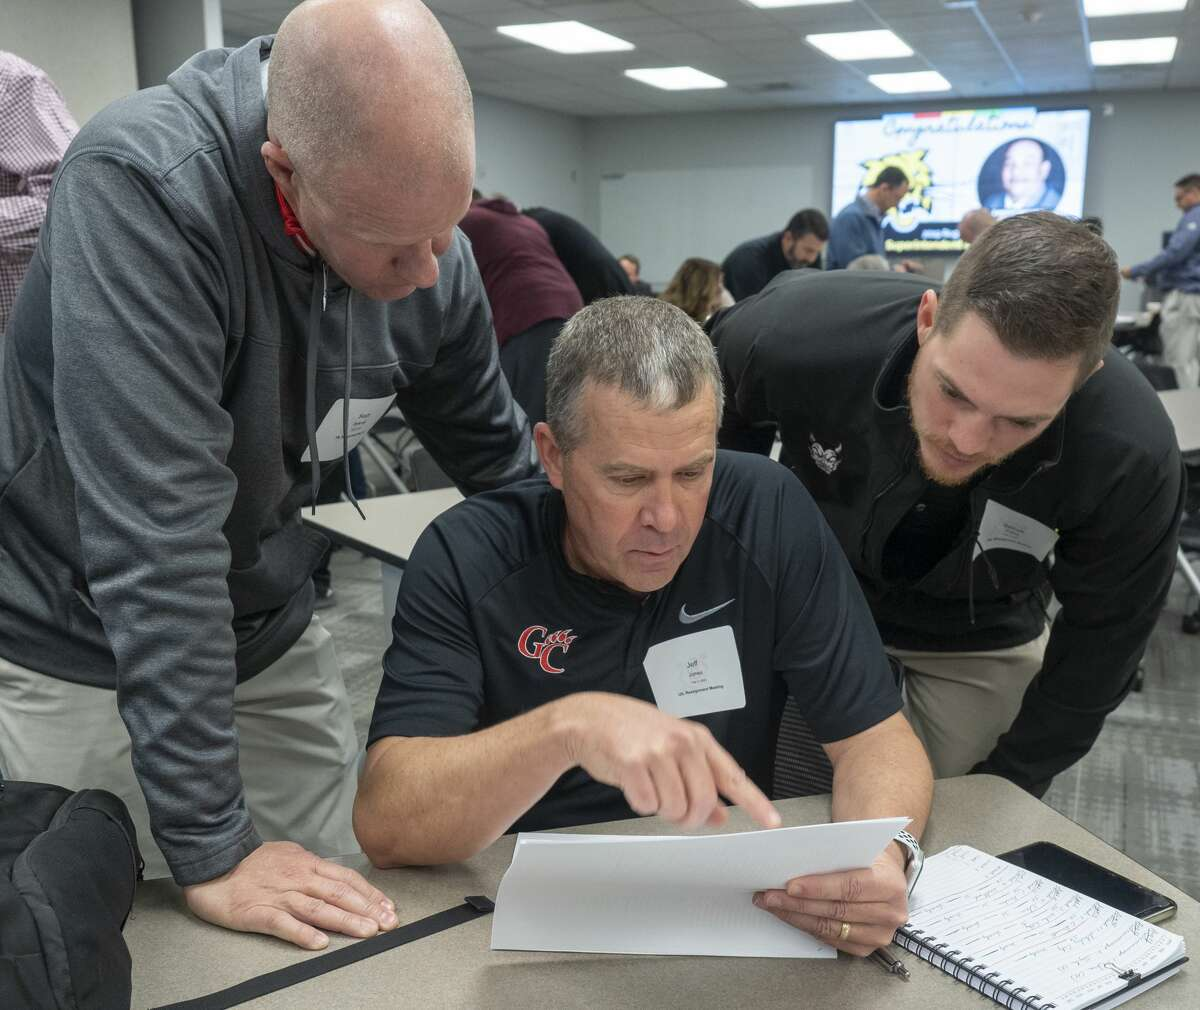 Garden City coach Jeff Jones, center, Glasscock County superintendent Scott Bicknell, left and Rankin coach Garrett Avalos look over the paperwork 02/03/2020 morning, distributed by the UIL governing body, on what schools will be classified or reassigned in the district for the 2020-2022 school years. Tim Fischer/Reporter-Telegram